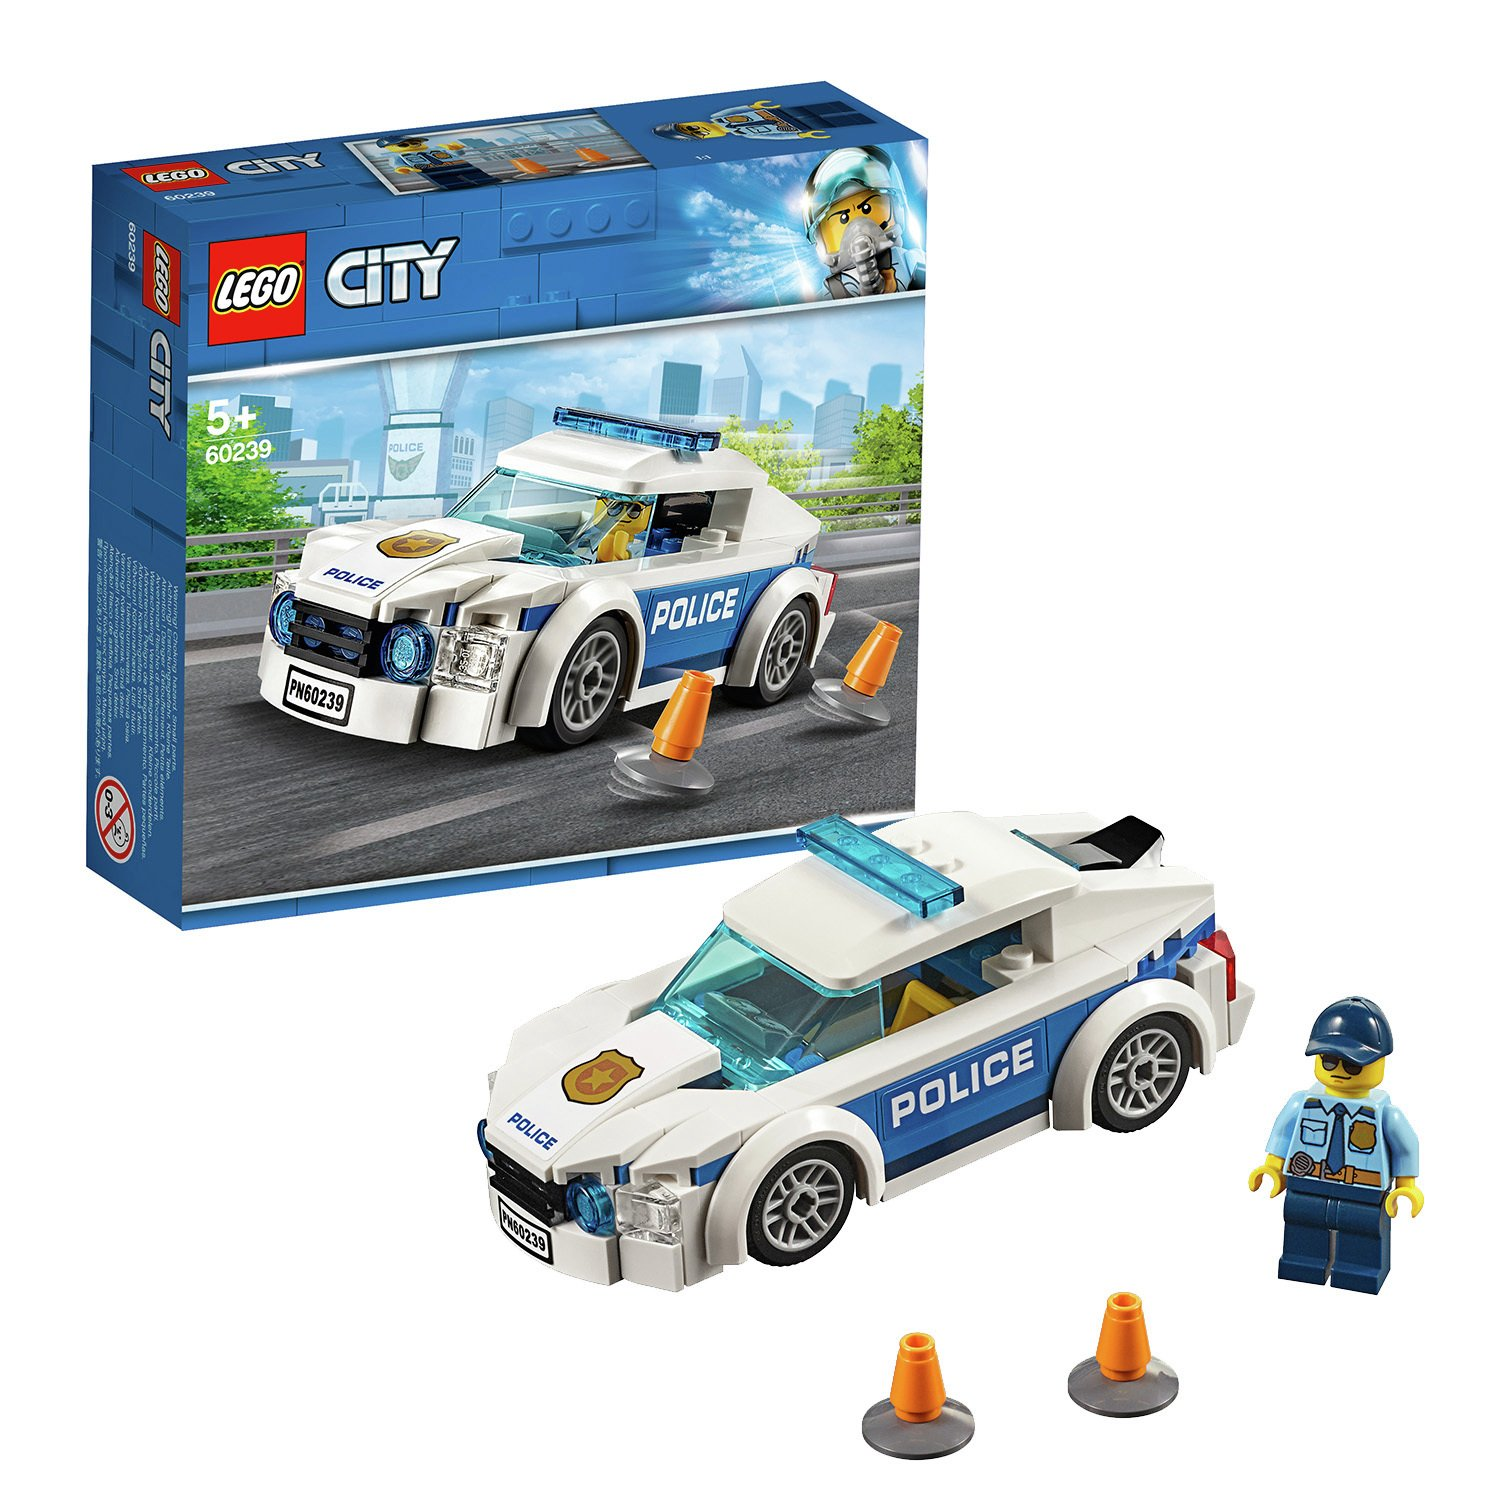 LEGO City Police Patrol Toy Car   60239